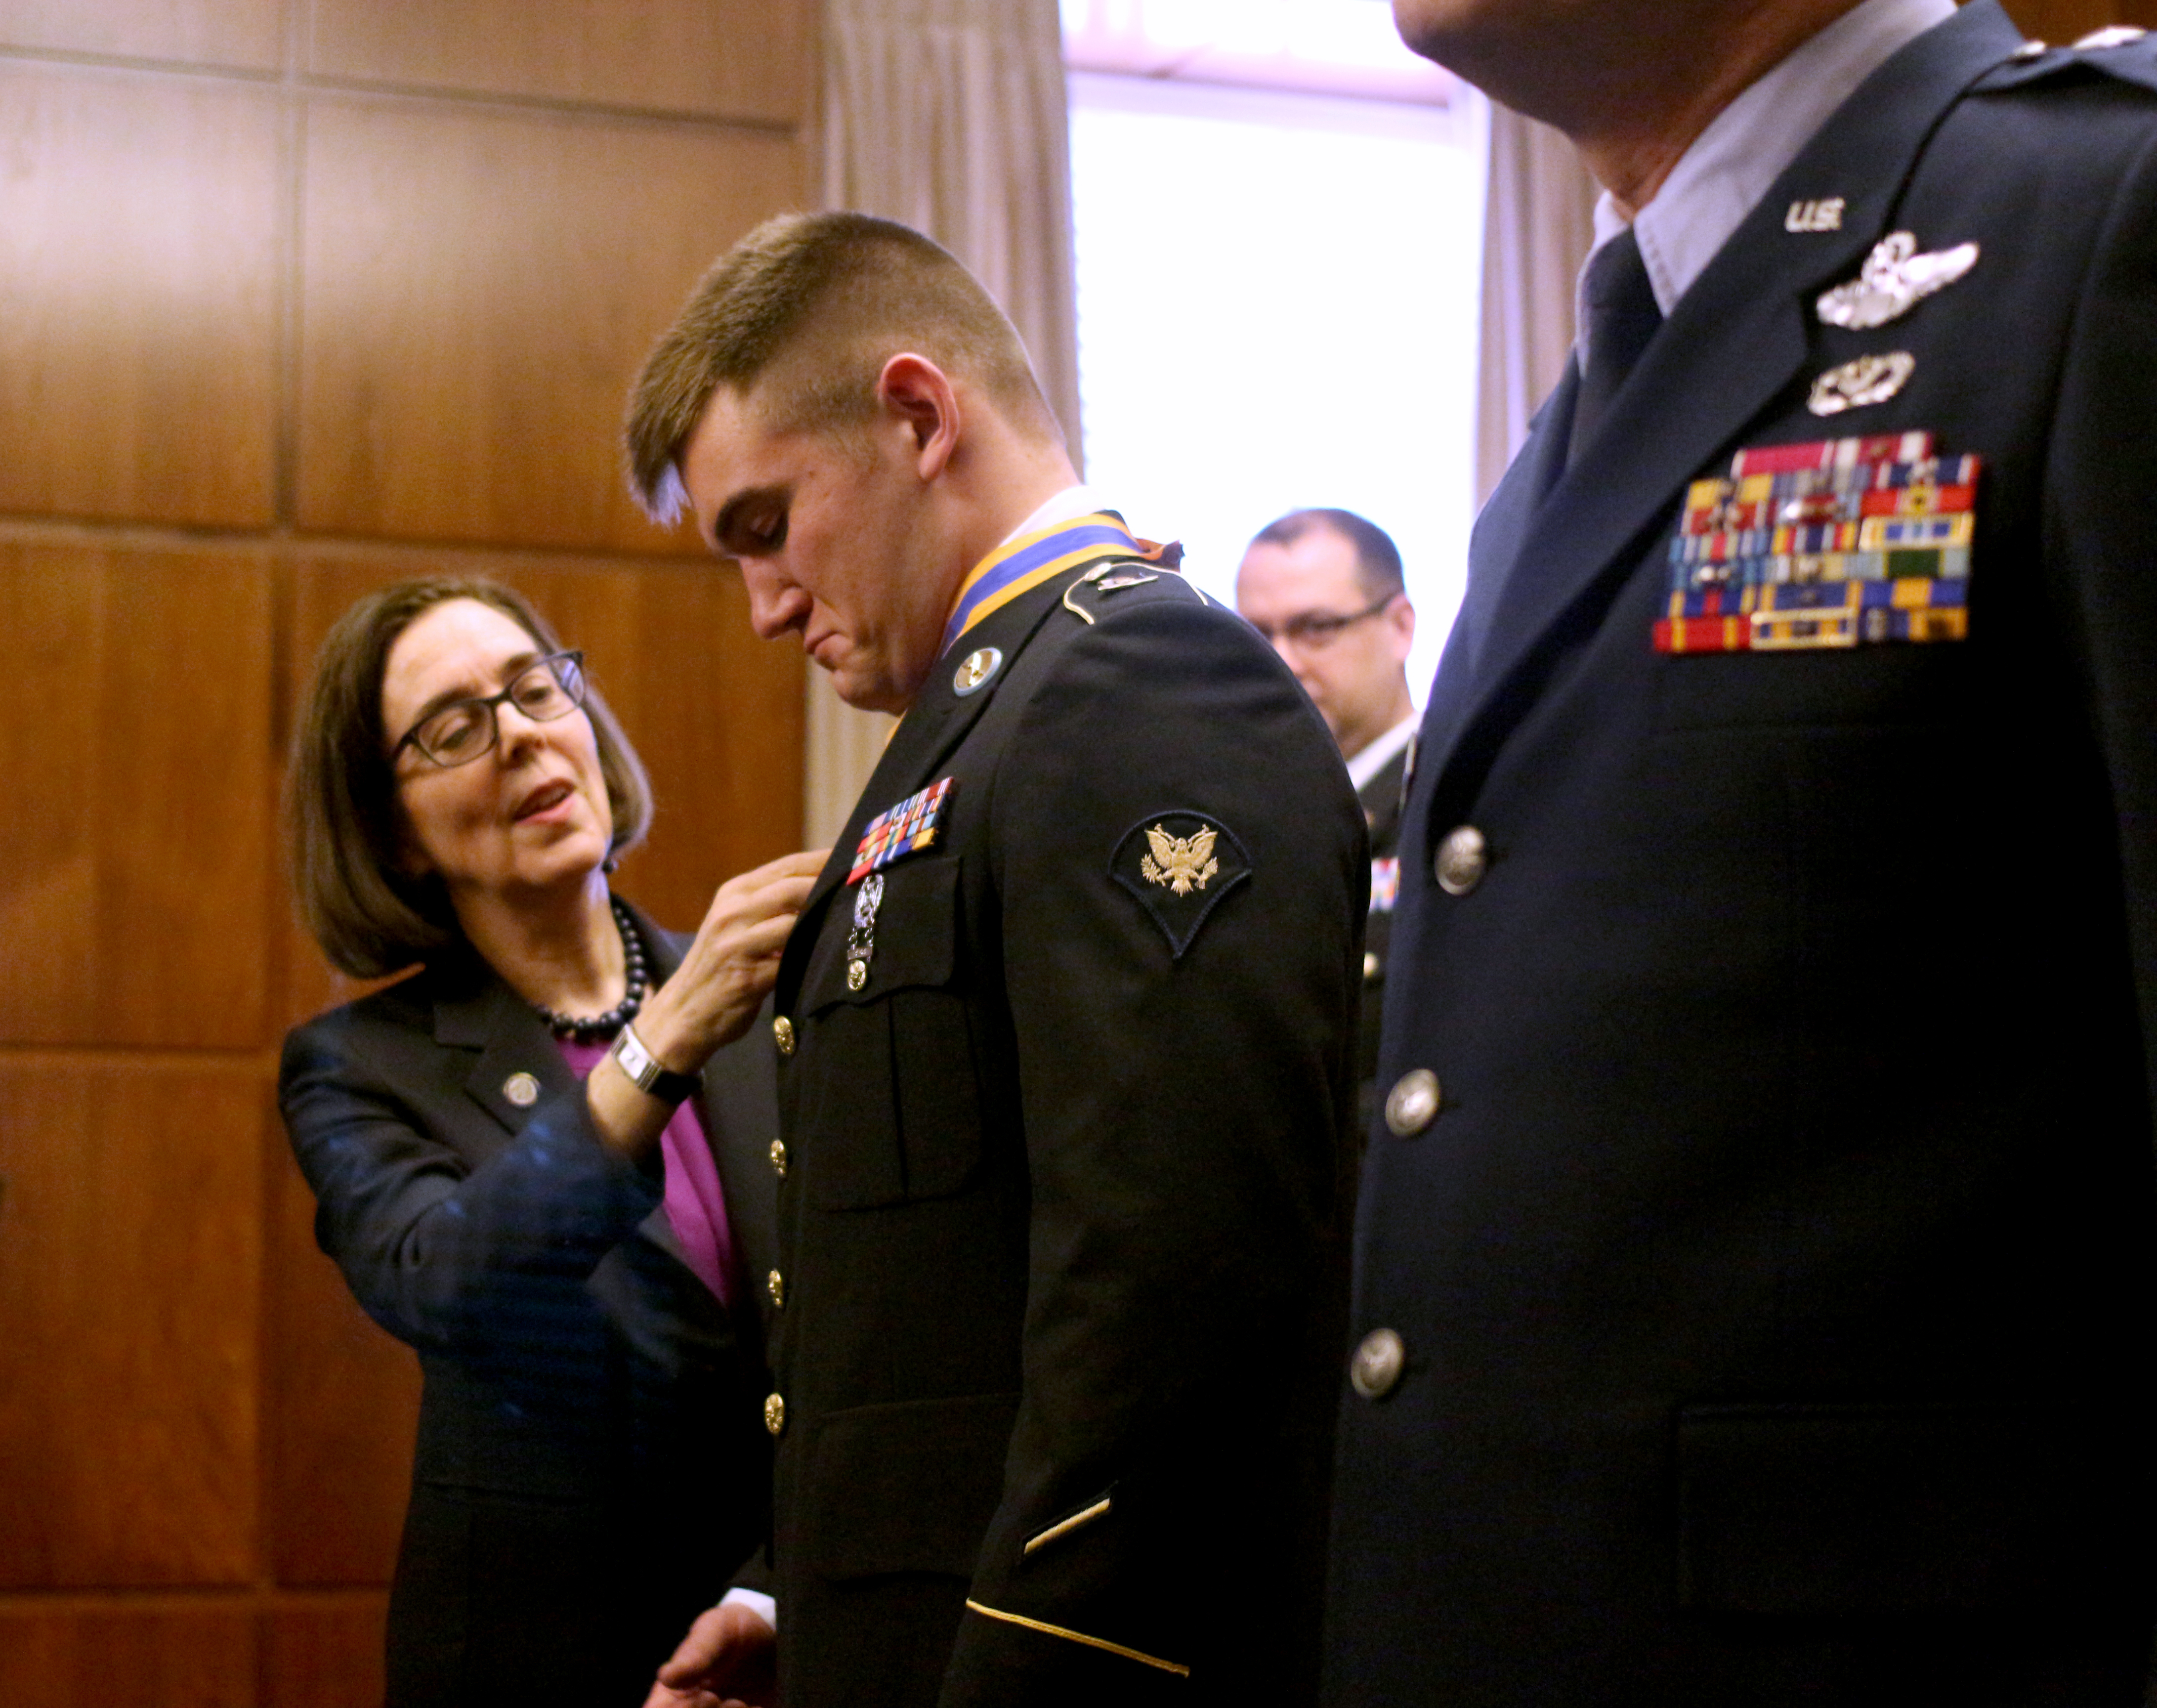 Gov. Kate Brown speaks with Alek Skarlatos after Skarlatos was awarded the Oregon Distinguished Service Award on Wednesday, Feb. 17, 2016 in Salem, Ore. Brown presented the Oregon Distinguished Service Medal to Skarlatos, the Oregon National Guard specialist who helped subdue a heavily armed gunman on a Paris-bound train last year.  (Gordon Friedman/Statesman-Journal via AP) MANDATORY CREDIT